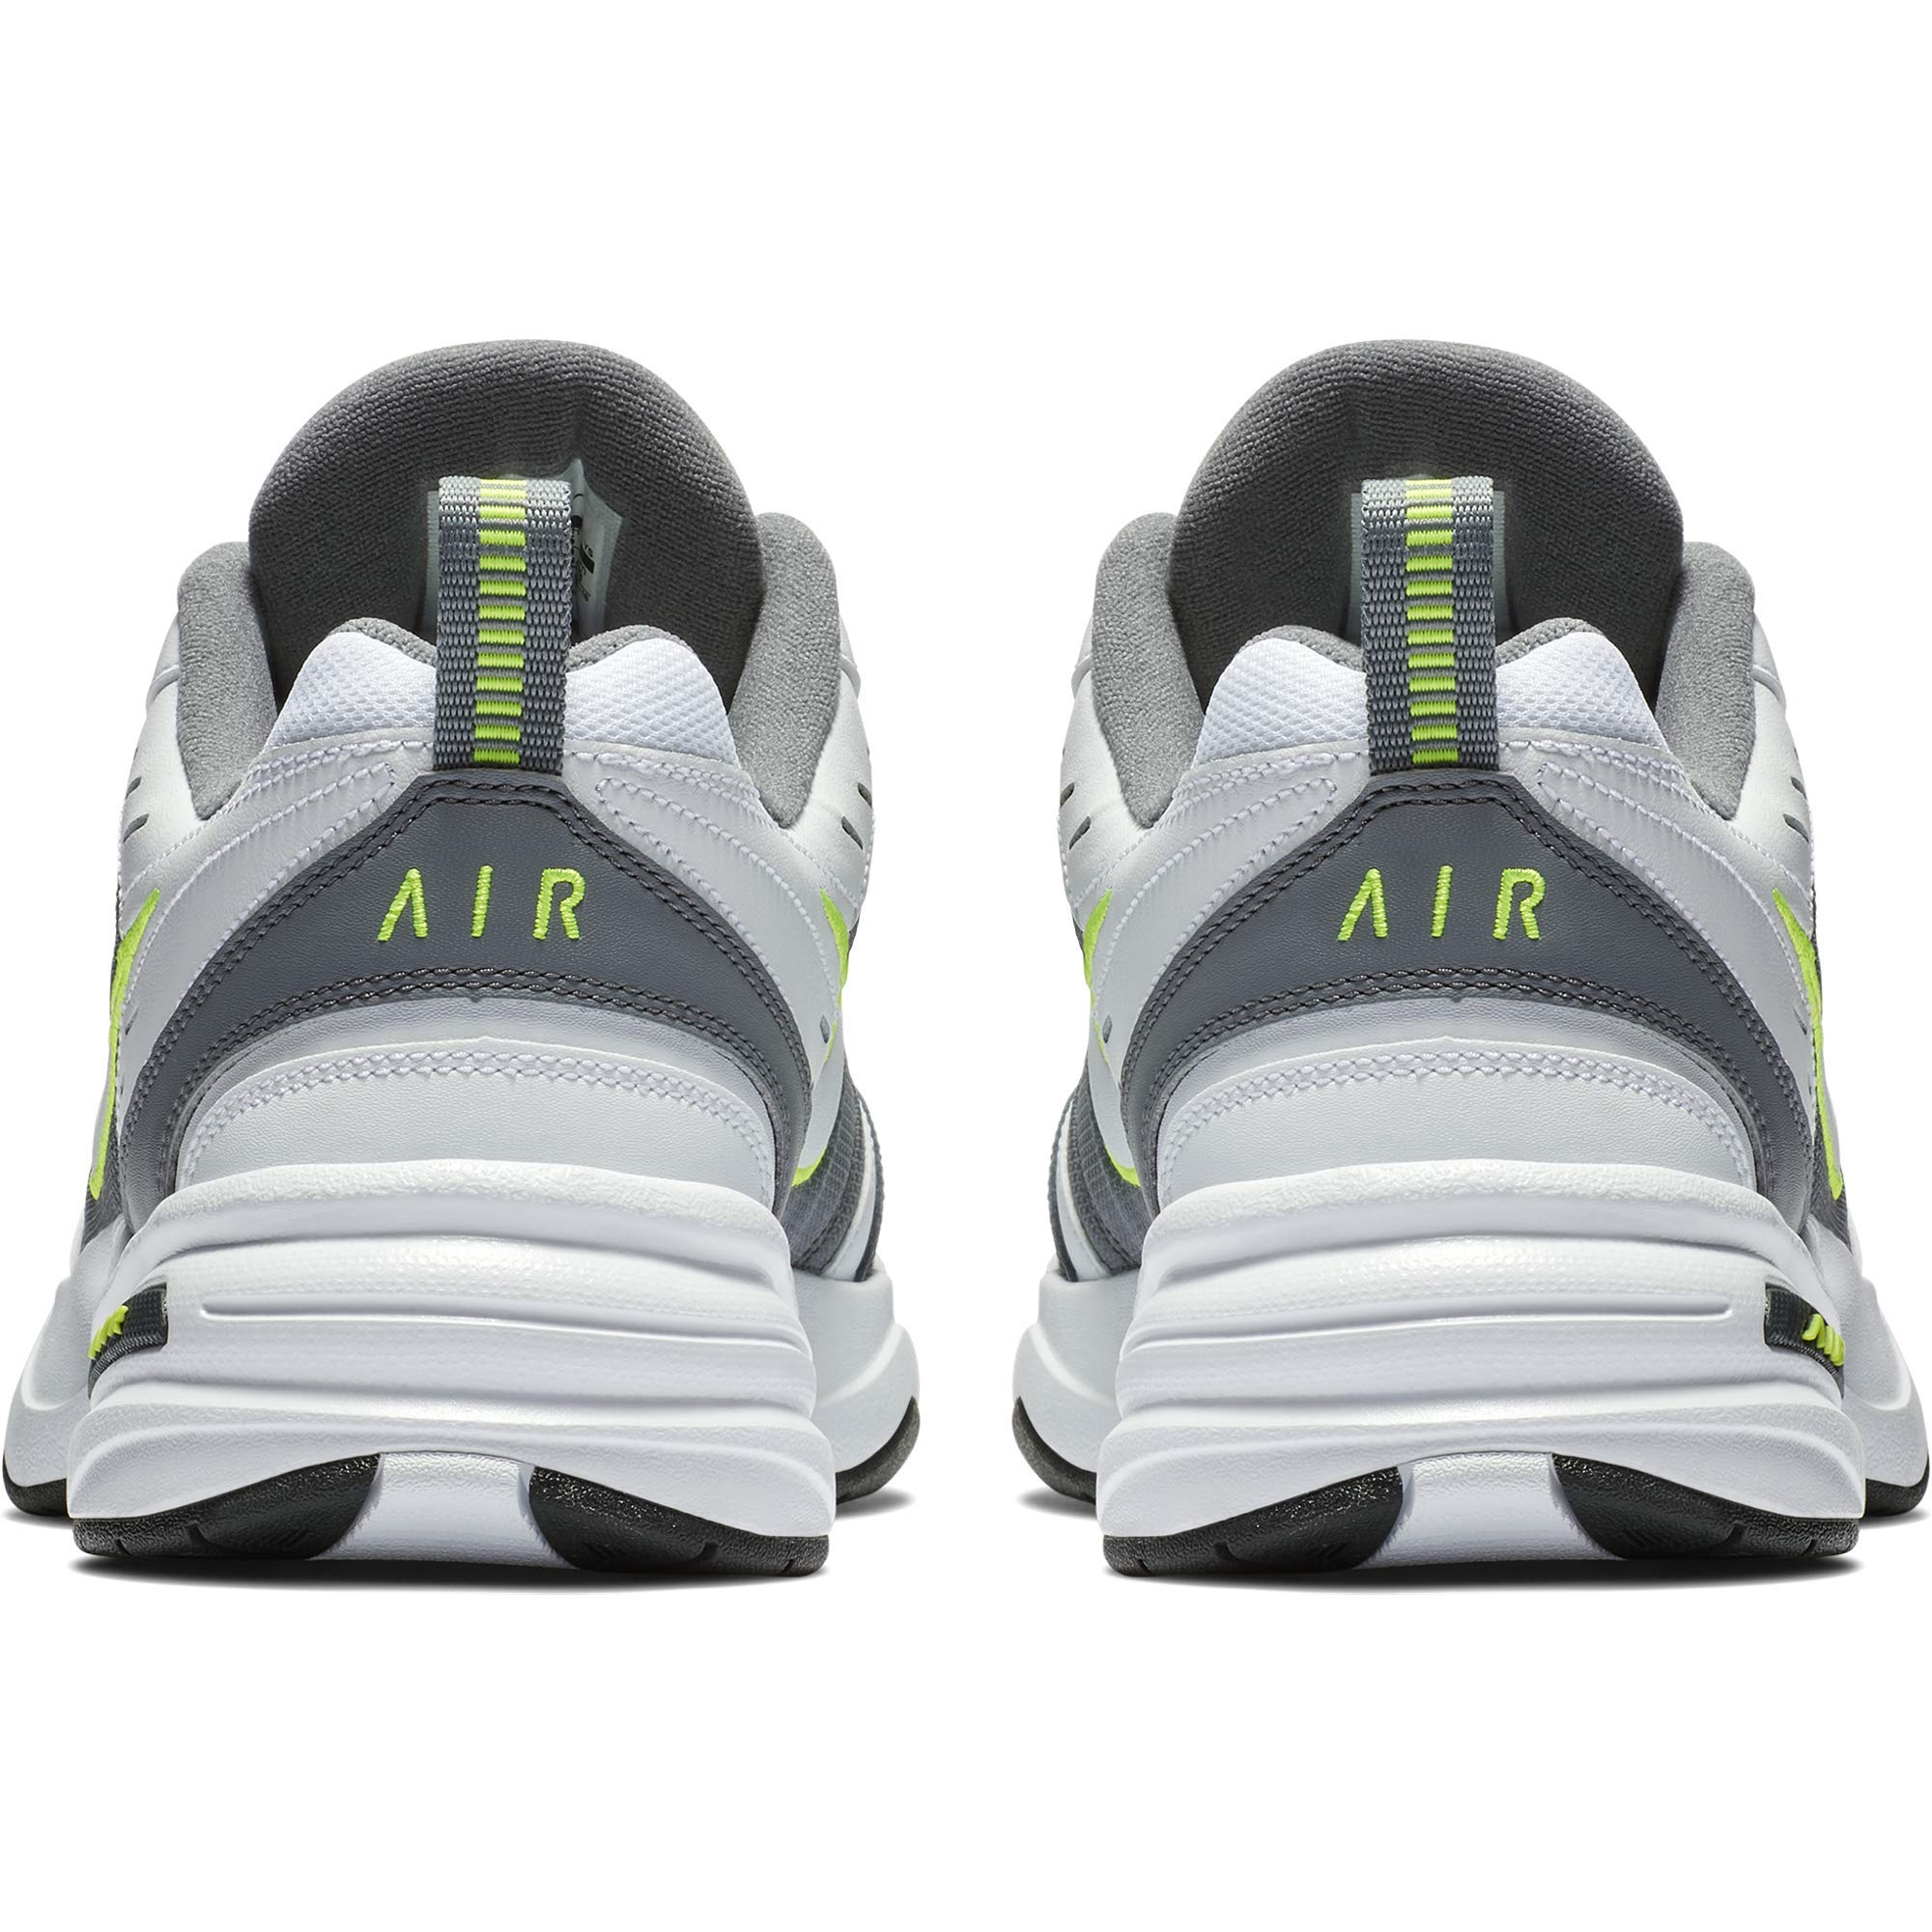 Nike Men's Air Monarch IV Cross Trainer, White-Cool Grey-Anthracite, 6.5 Regular US by Nike (Image #9)